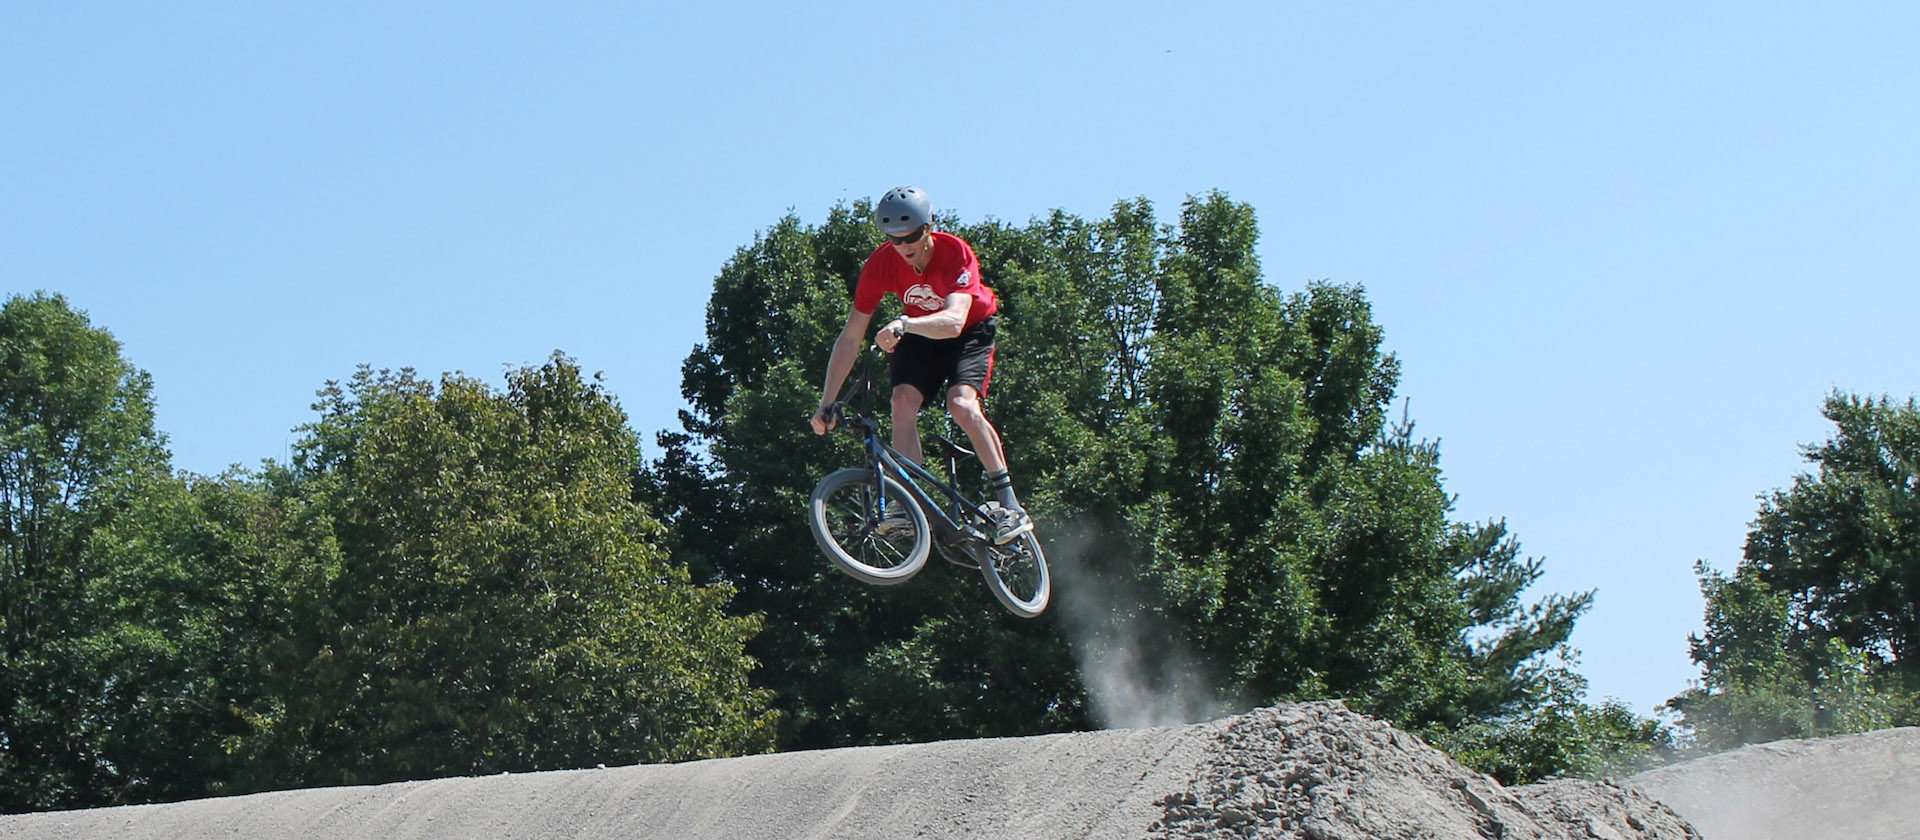 BMX at Bruce's Mill Conservation Area hero image